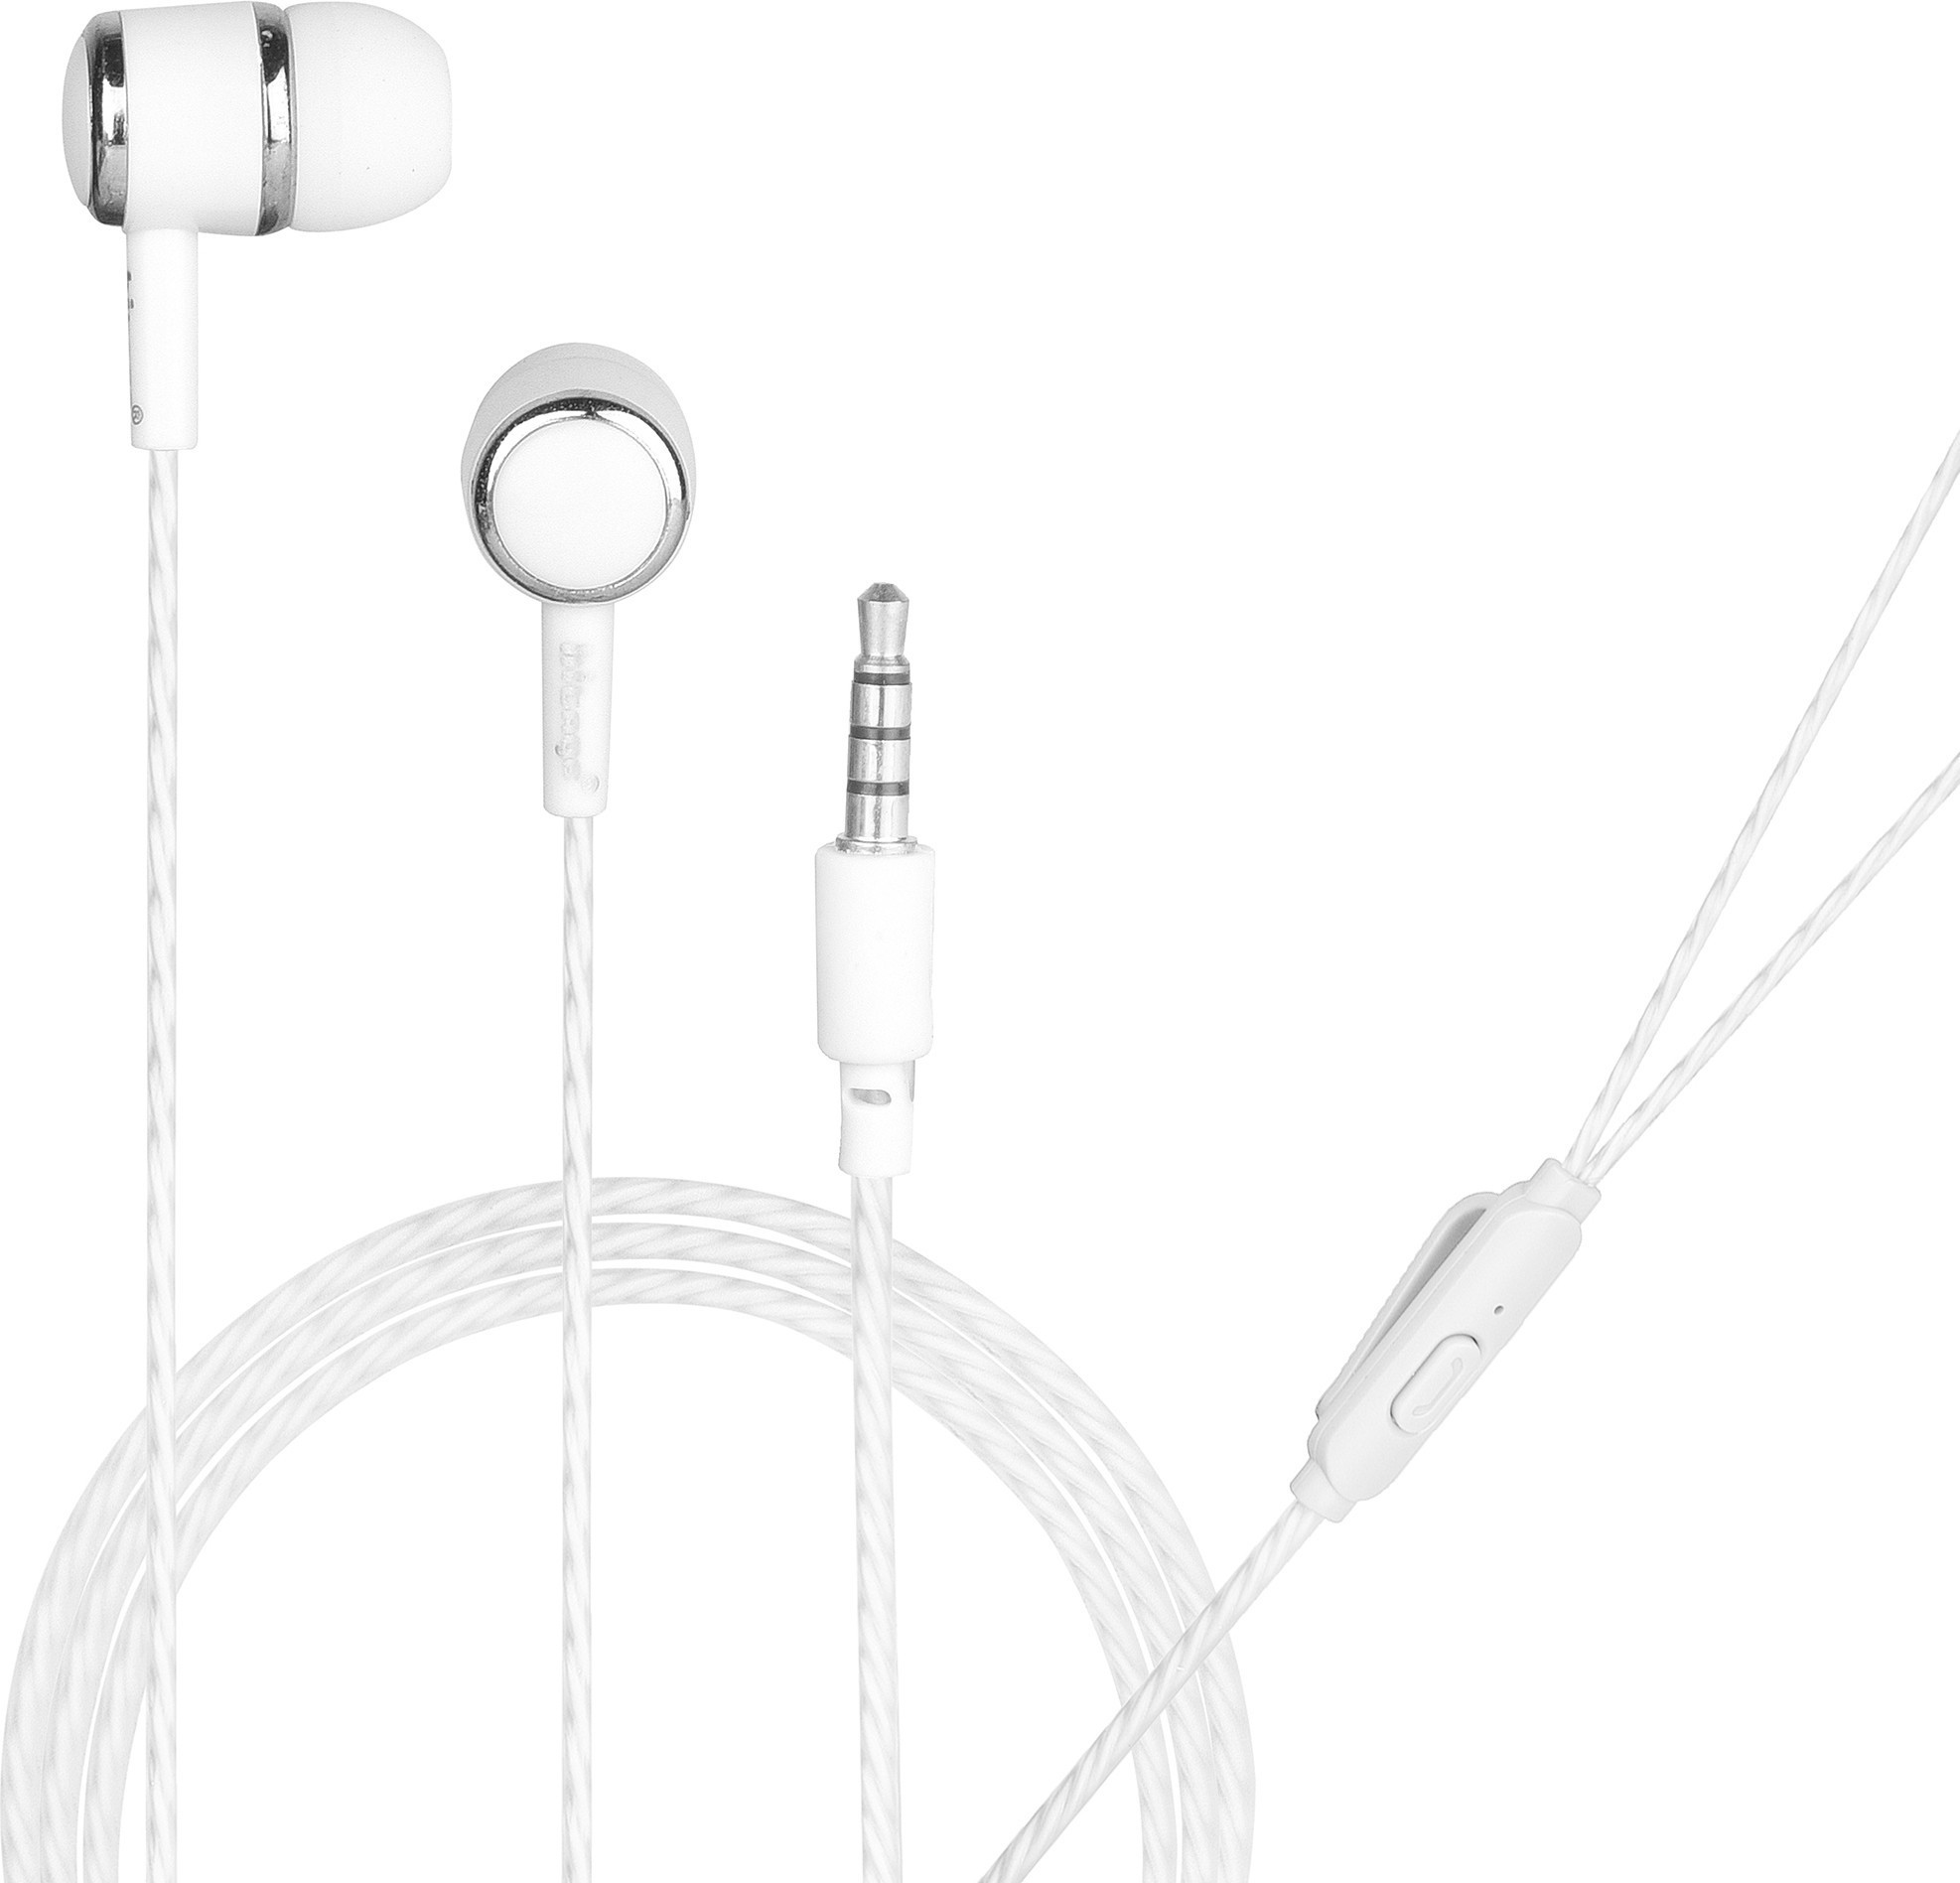 Hitage Round i like METAL earphone with One Key Answer Button Wired Headset (White, In the Ear)